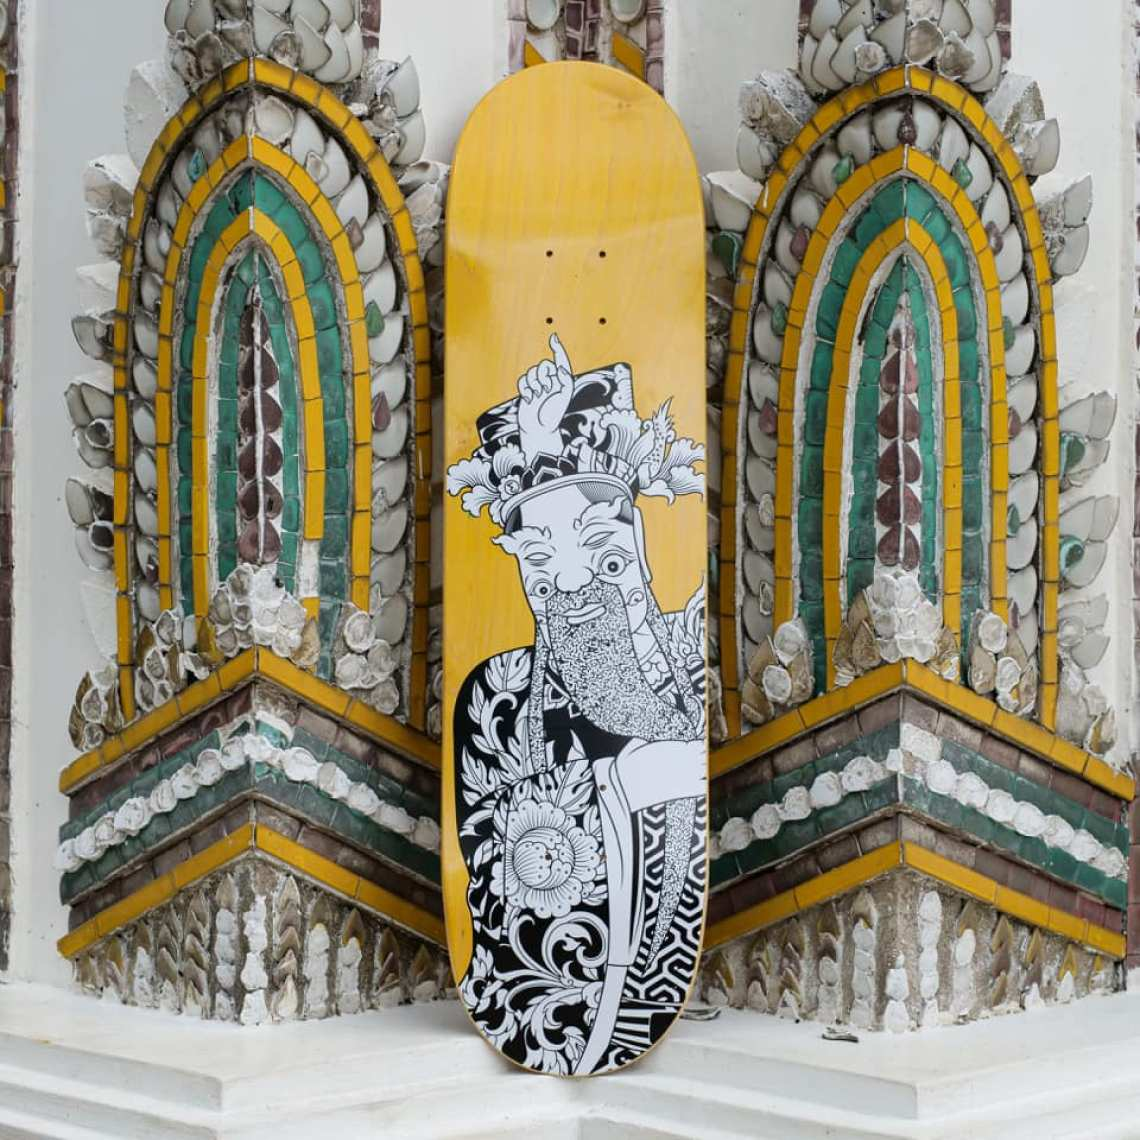 Stone Giants Deck Series By TR For Preduce Skateboards 8